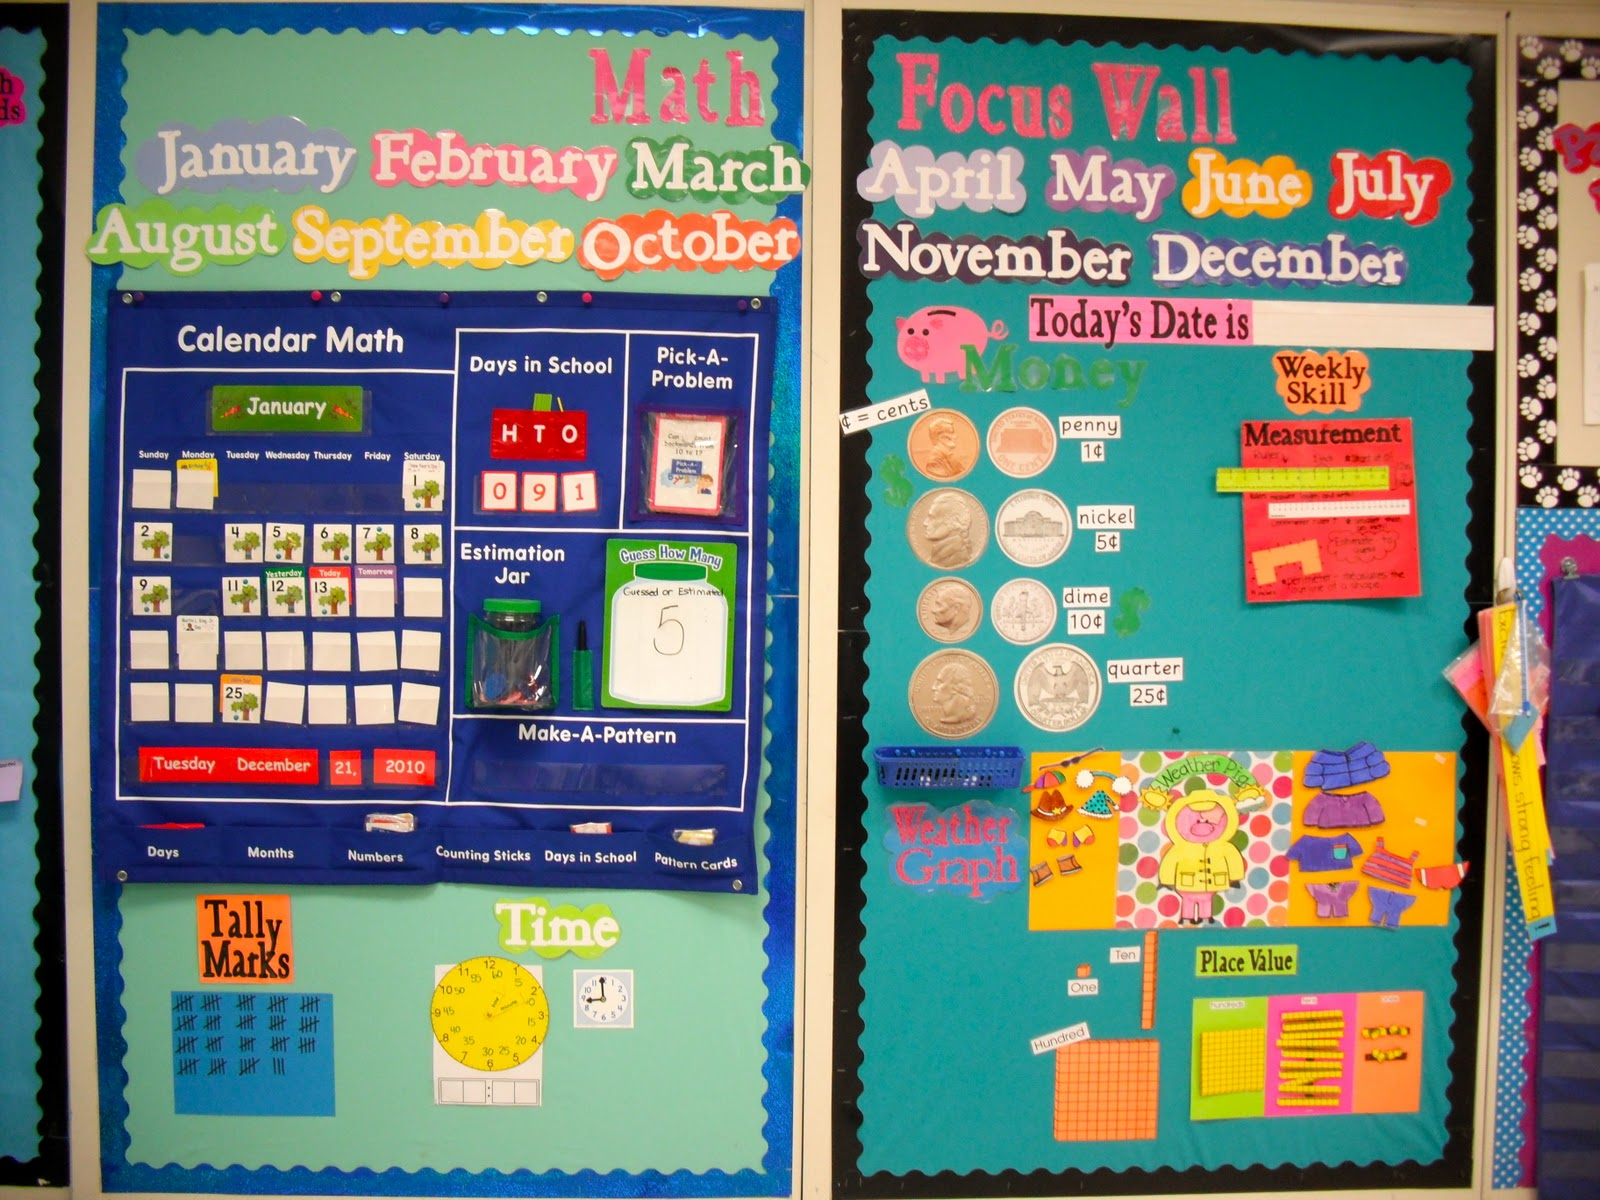 Math Focus Wall http://firstgradefresh.blogspot.com/2011/02/math-focus-wall-and-my-new-obession.html